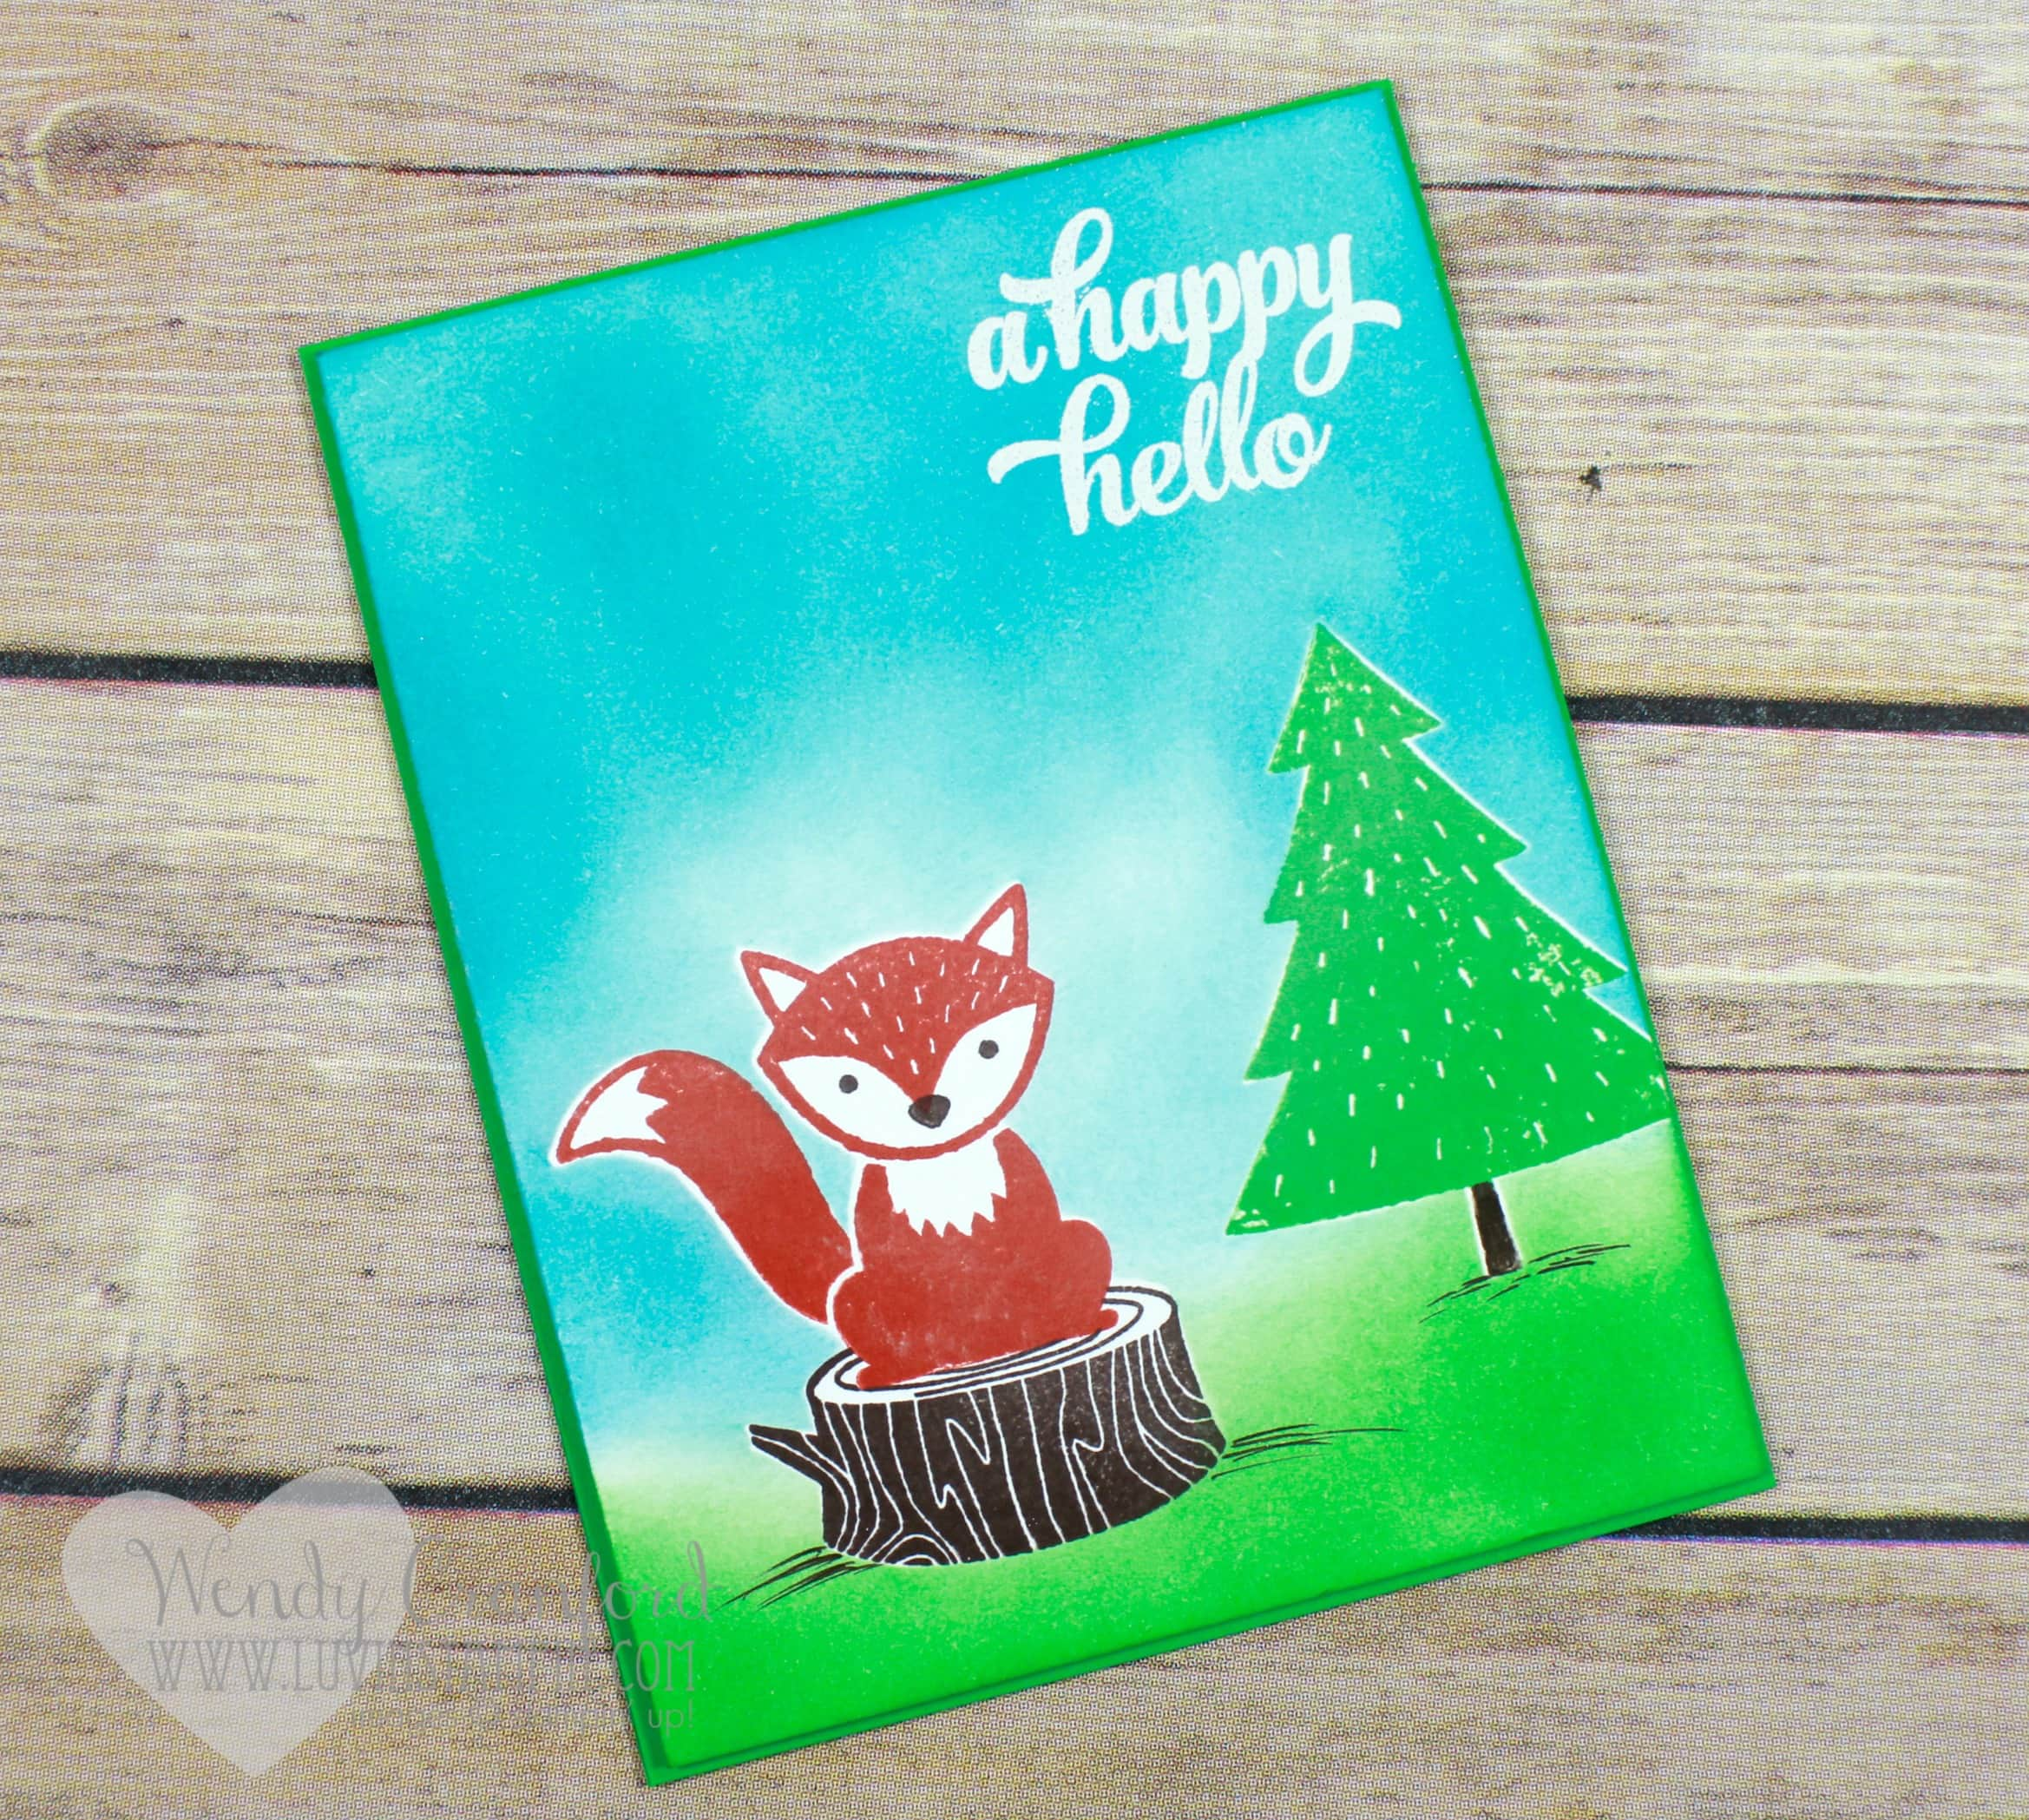 Foxy friends stamp set and A Little Foxy designer series paper pair to make this cute card. Wendy Cranford www.luvinstampin.com